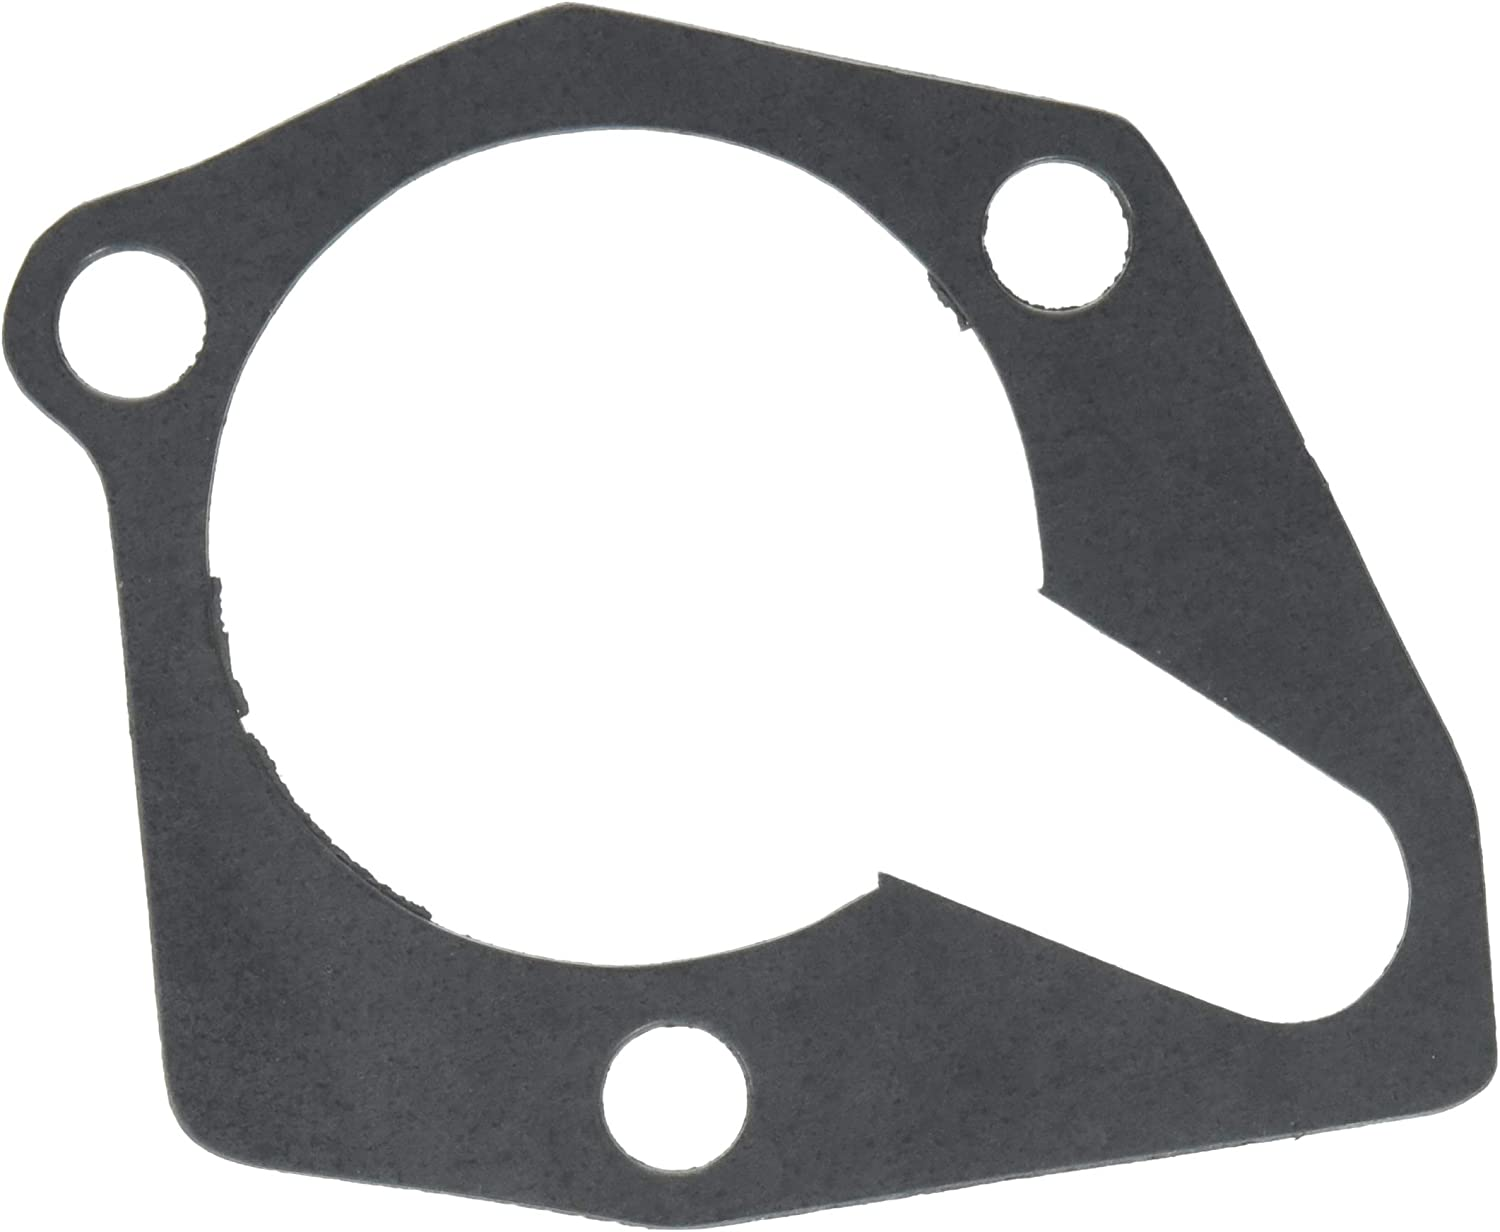 MAHLE G31510 Fuel Injection Body Seasonal Max 46% OFF Wrap Introduction Throttle Mounting Gasket